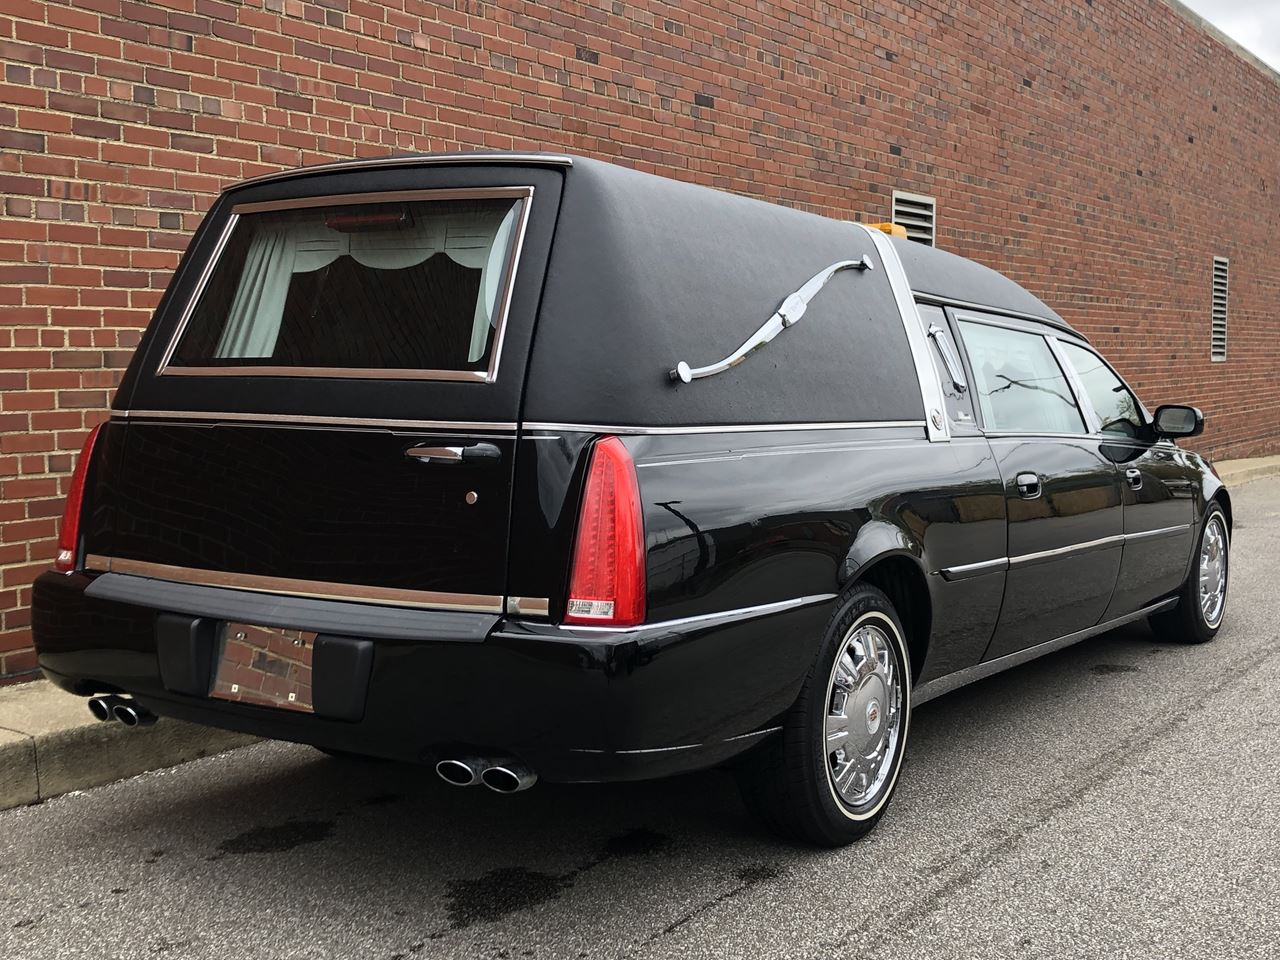 2011 Cadillac Eagle Kingsley Hearse 18 3